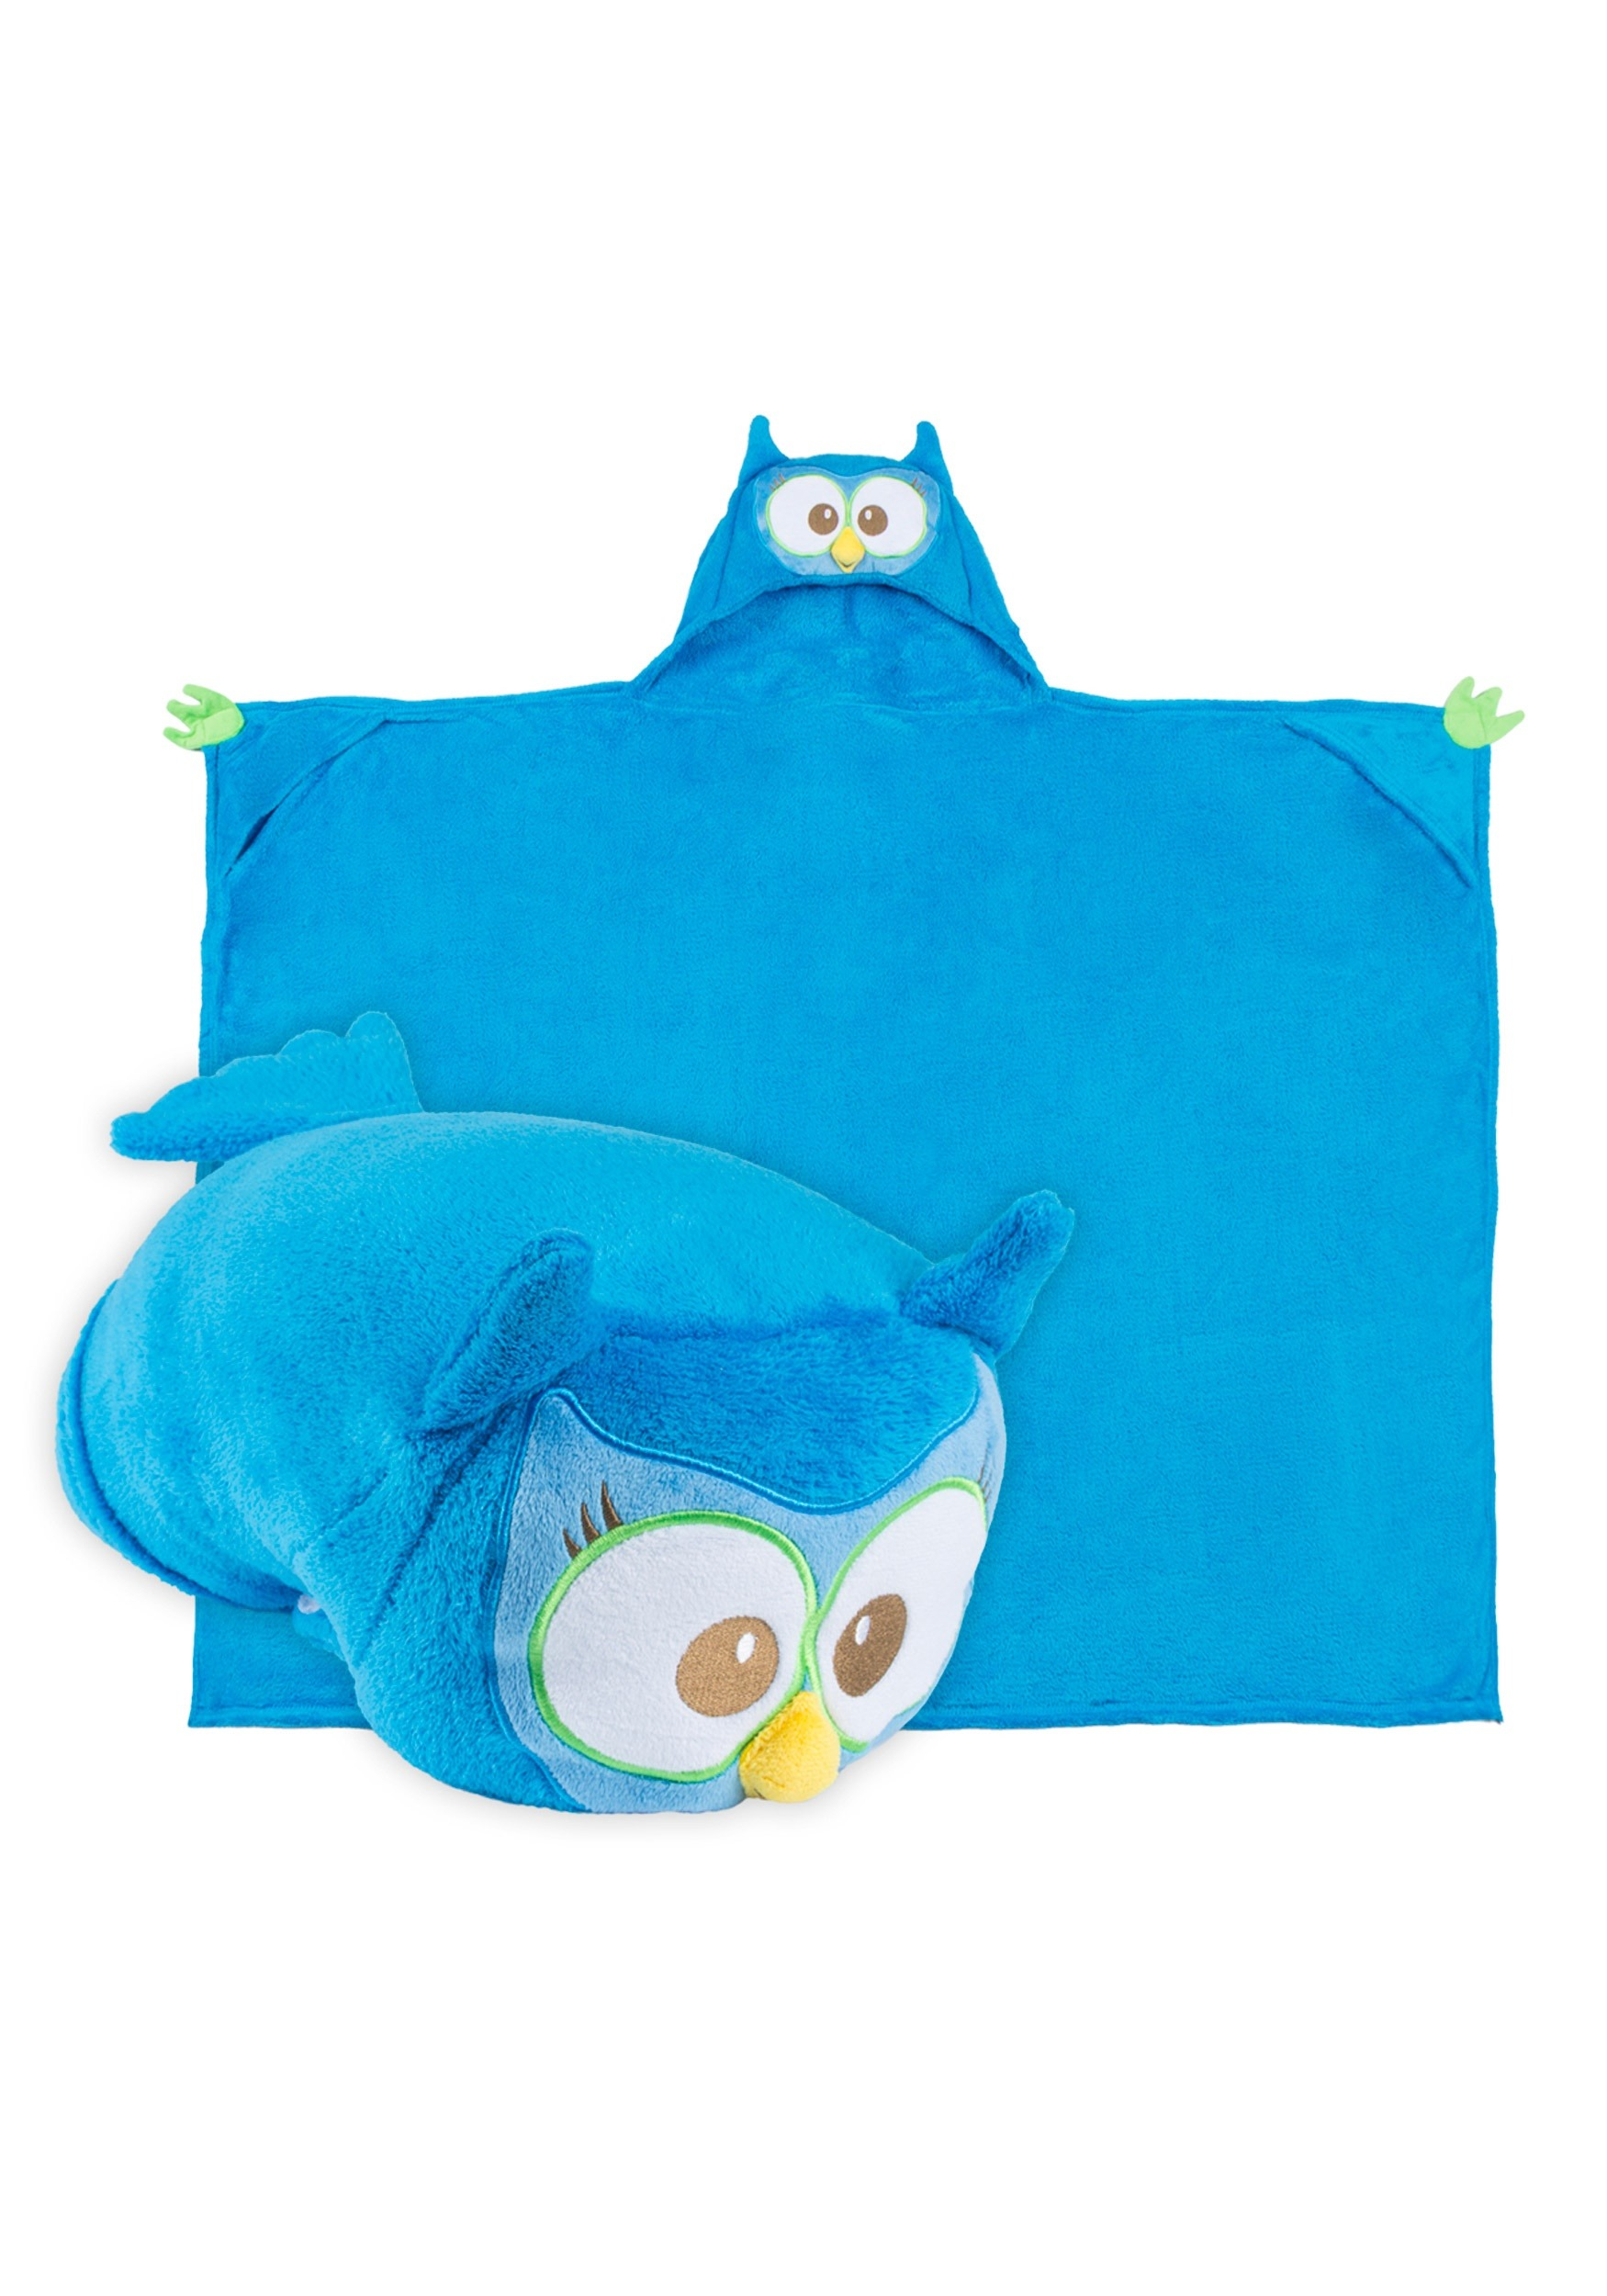 Olive the Owl Comfy Critter Blanket